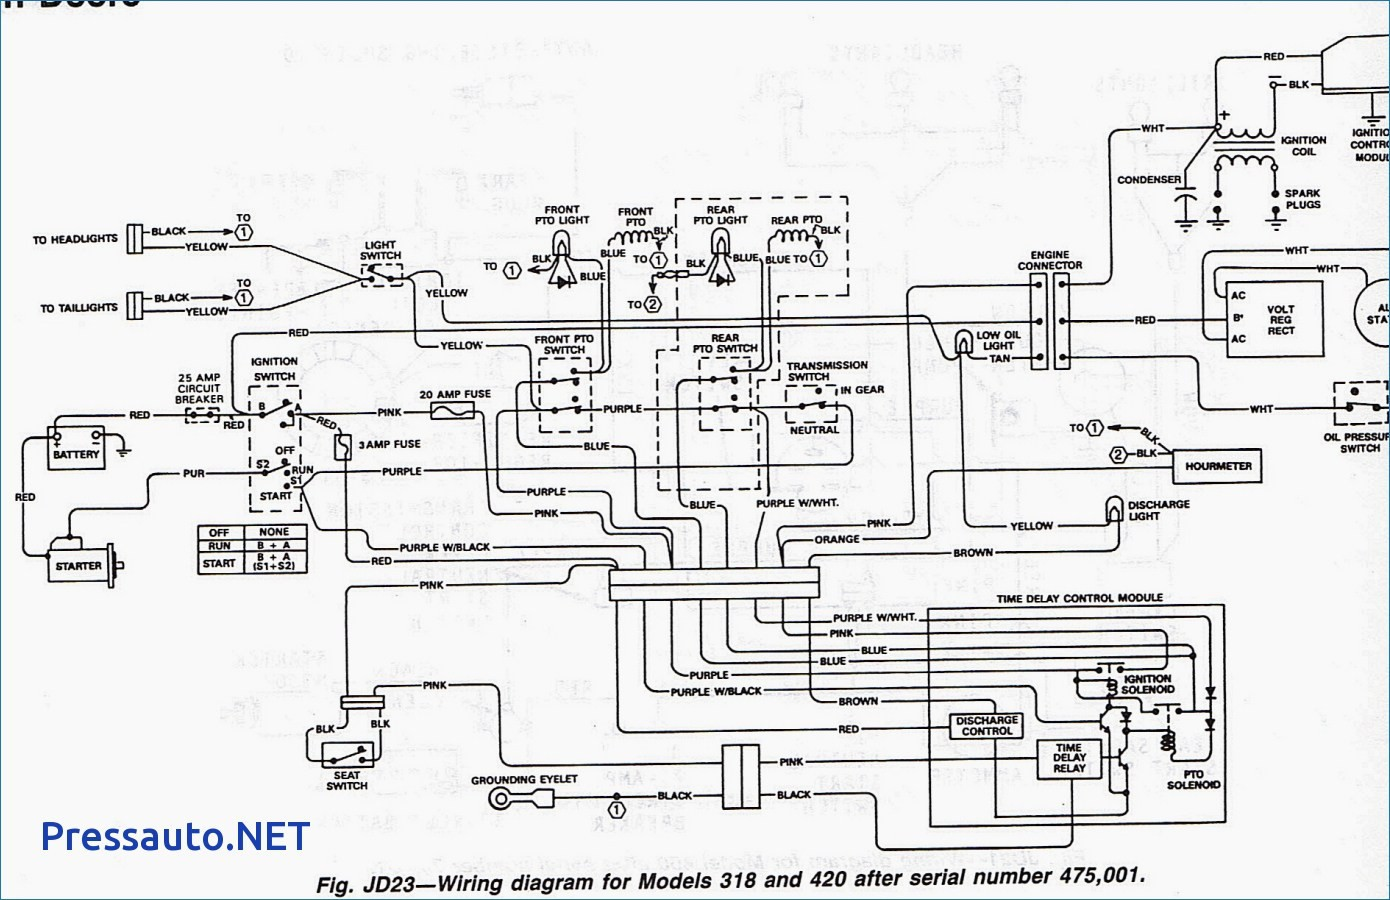 John Deere 855 Pto Wiring Diagram Library. Wiring Diagram For John Deere L120 Lawn Tractor Stx38 Pto Switch. John Deere. John Deere 430 Pto Clutch Wiring Diagram At Scoala.co